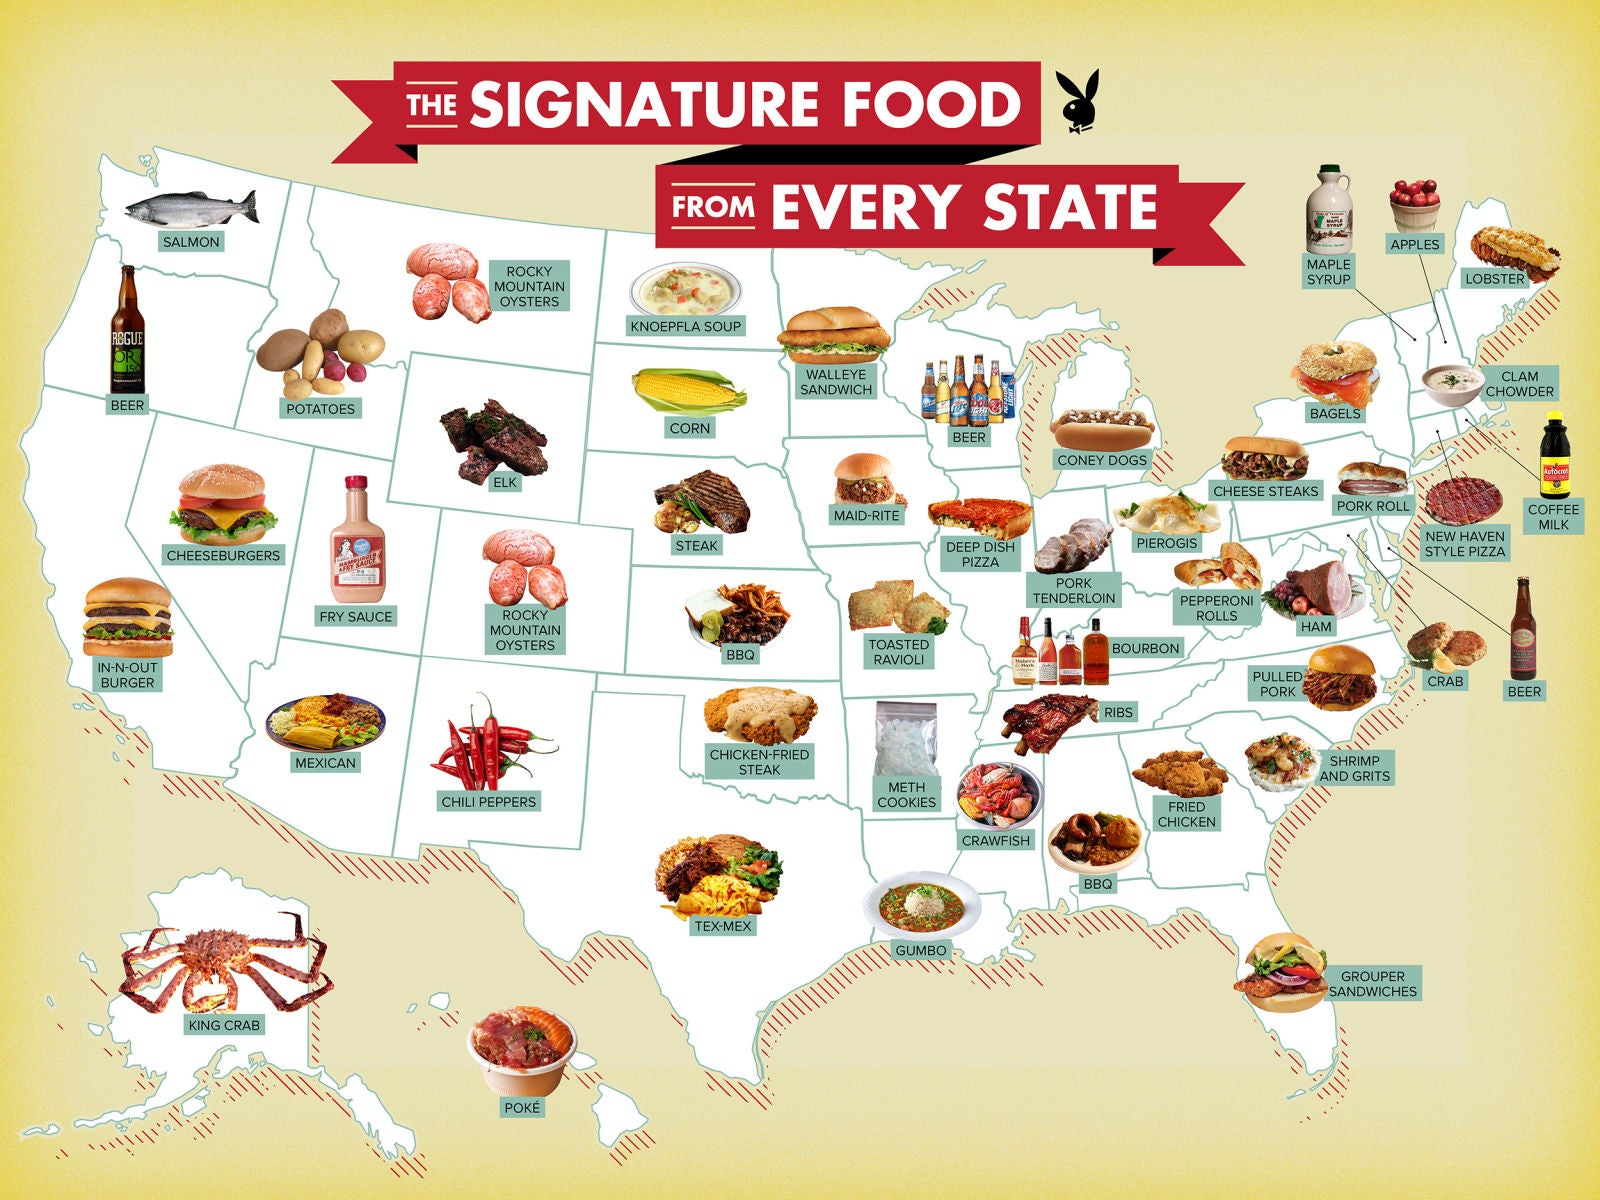 A map that shows the signature food from each state in the USA